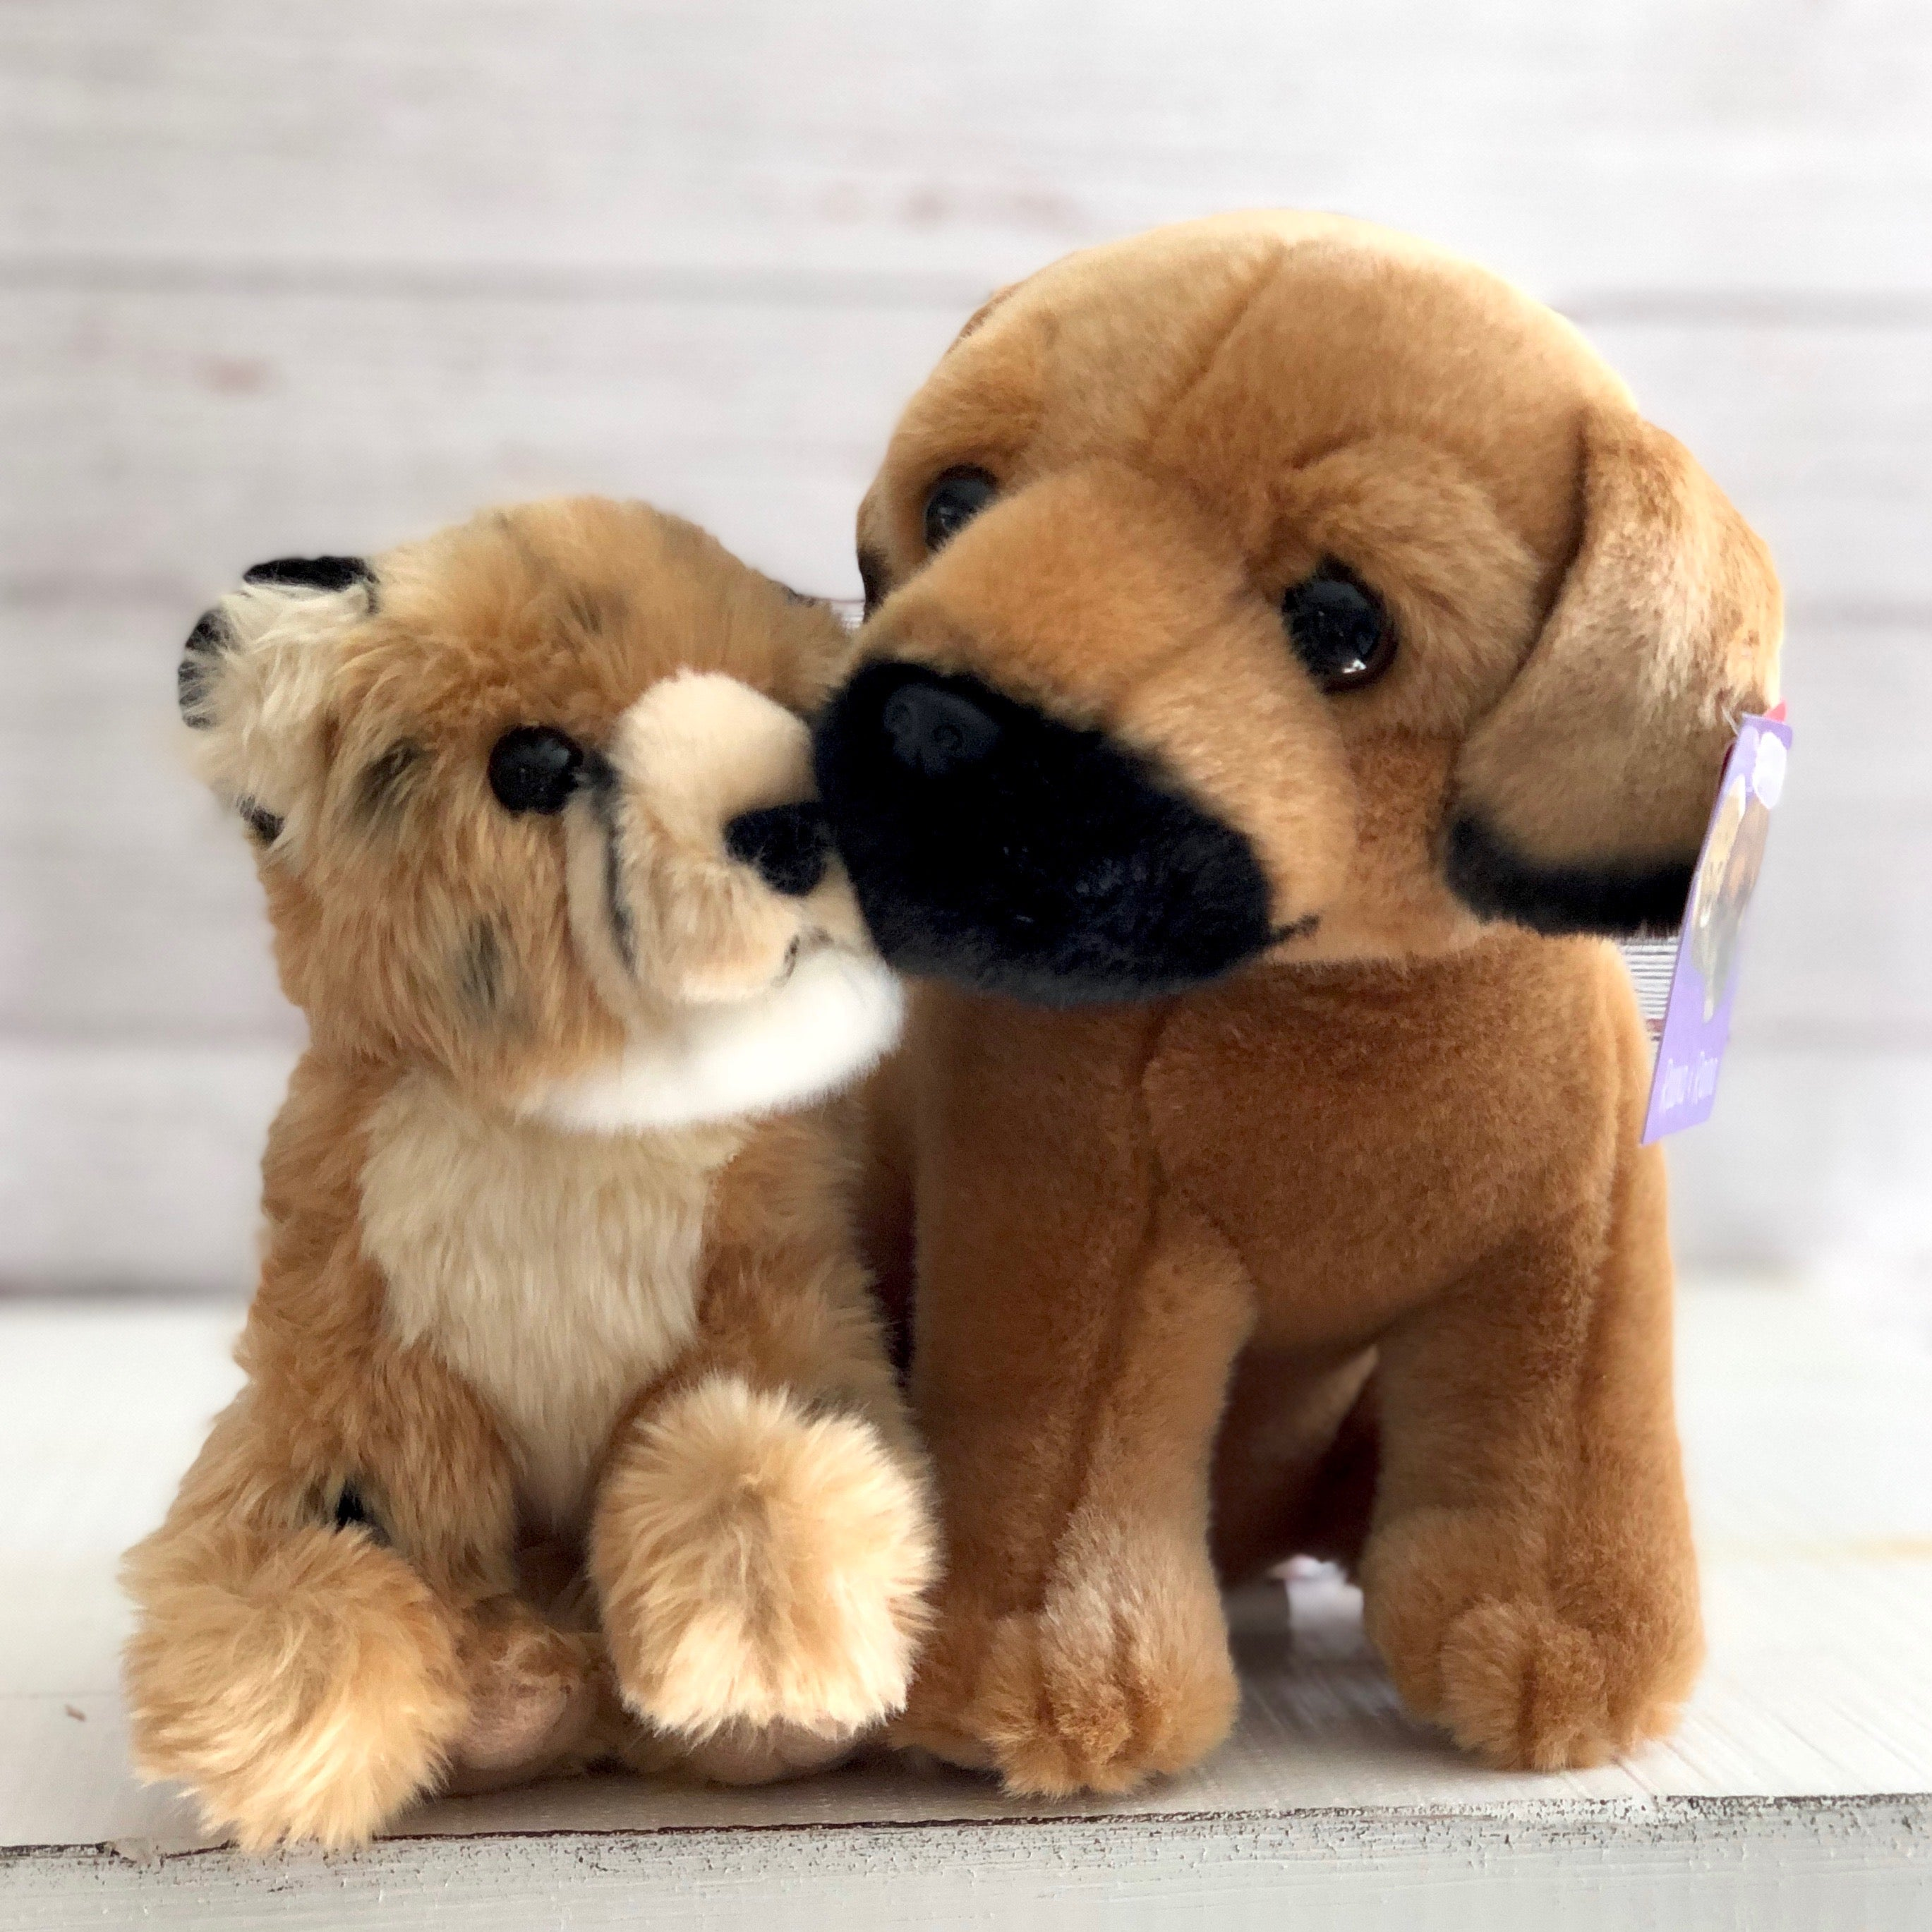 Cheetah and Dog plush